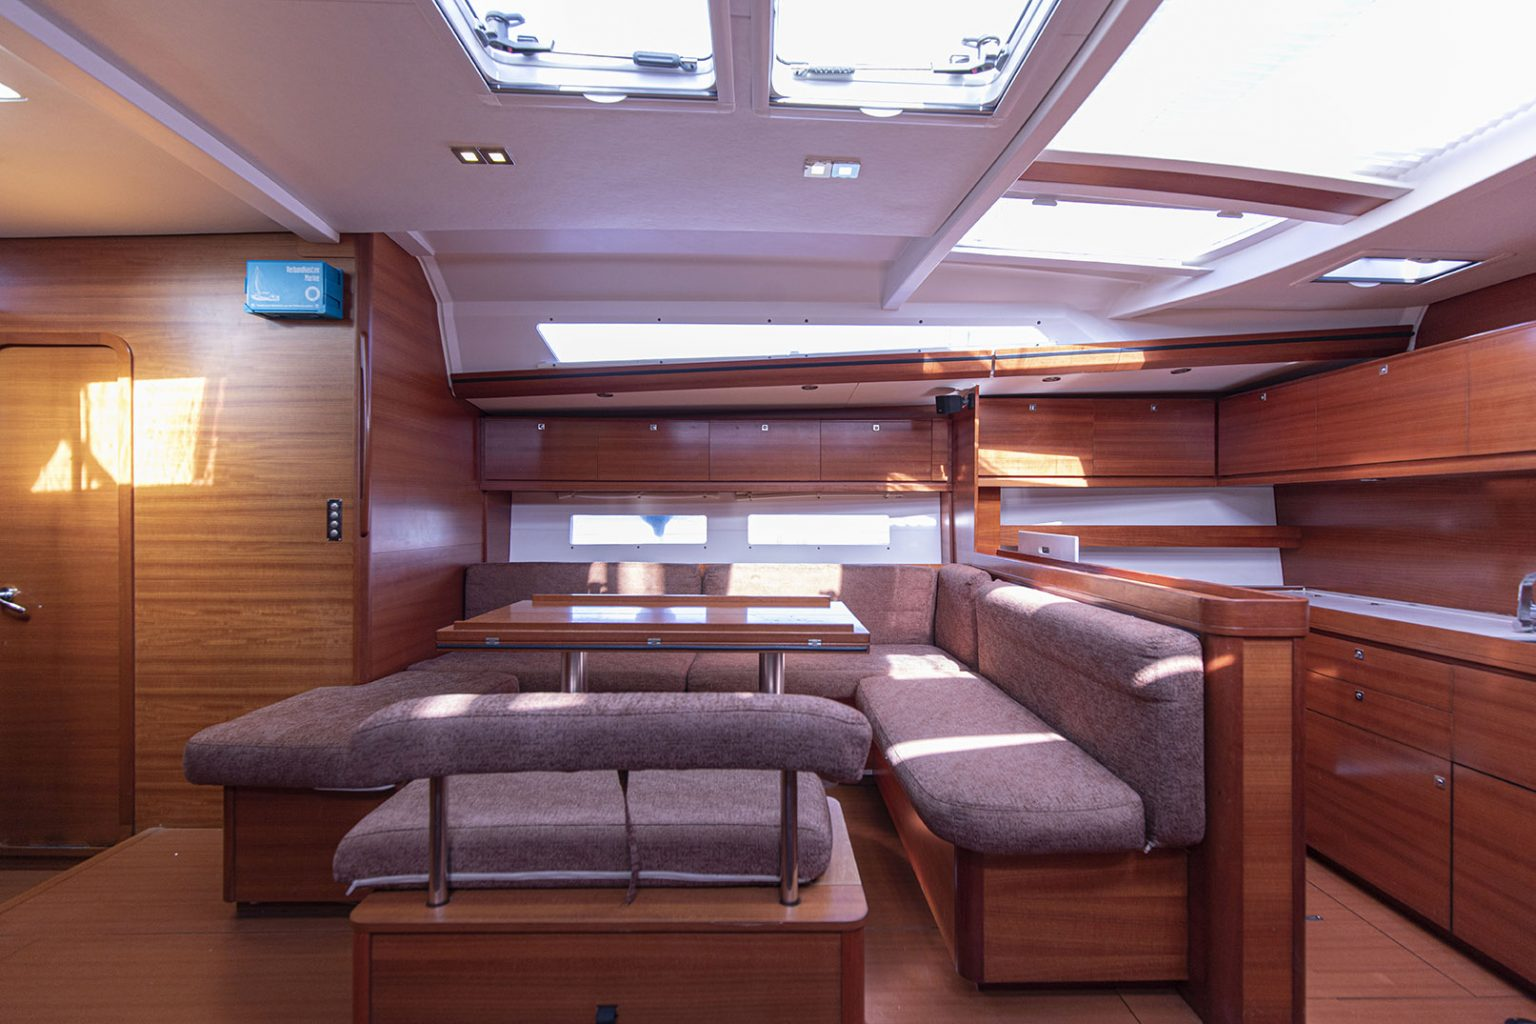 Dufour 560 That's All Sun Charter